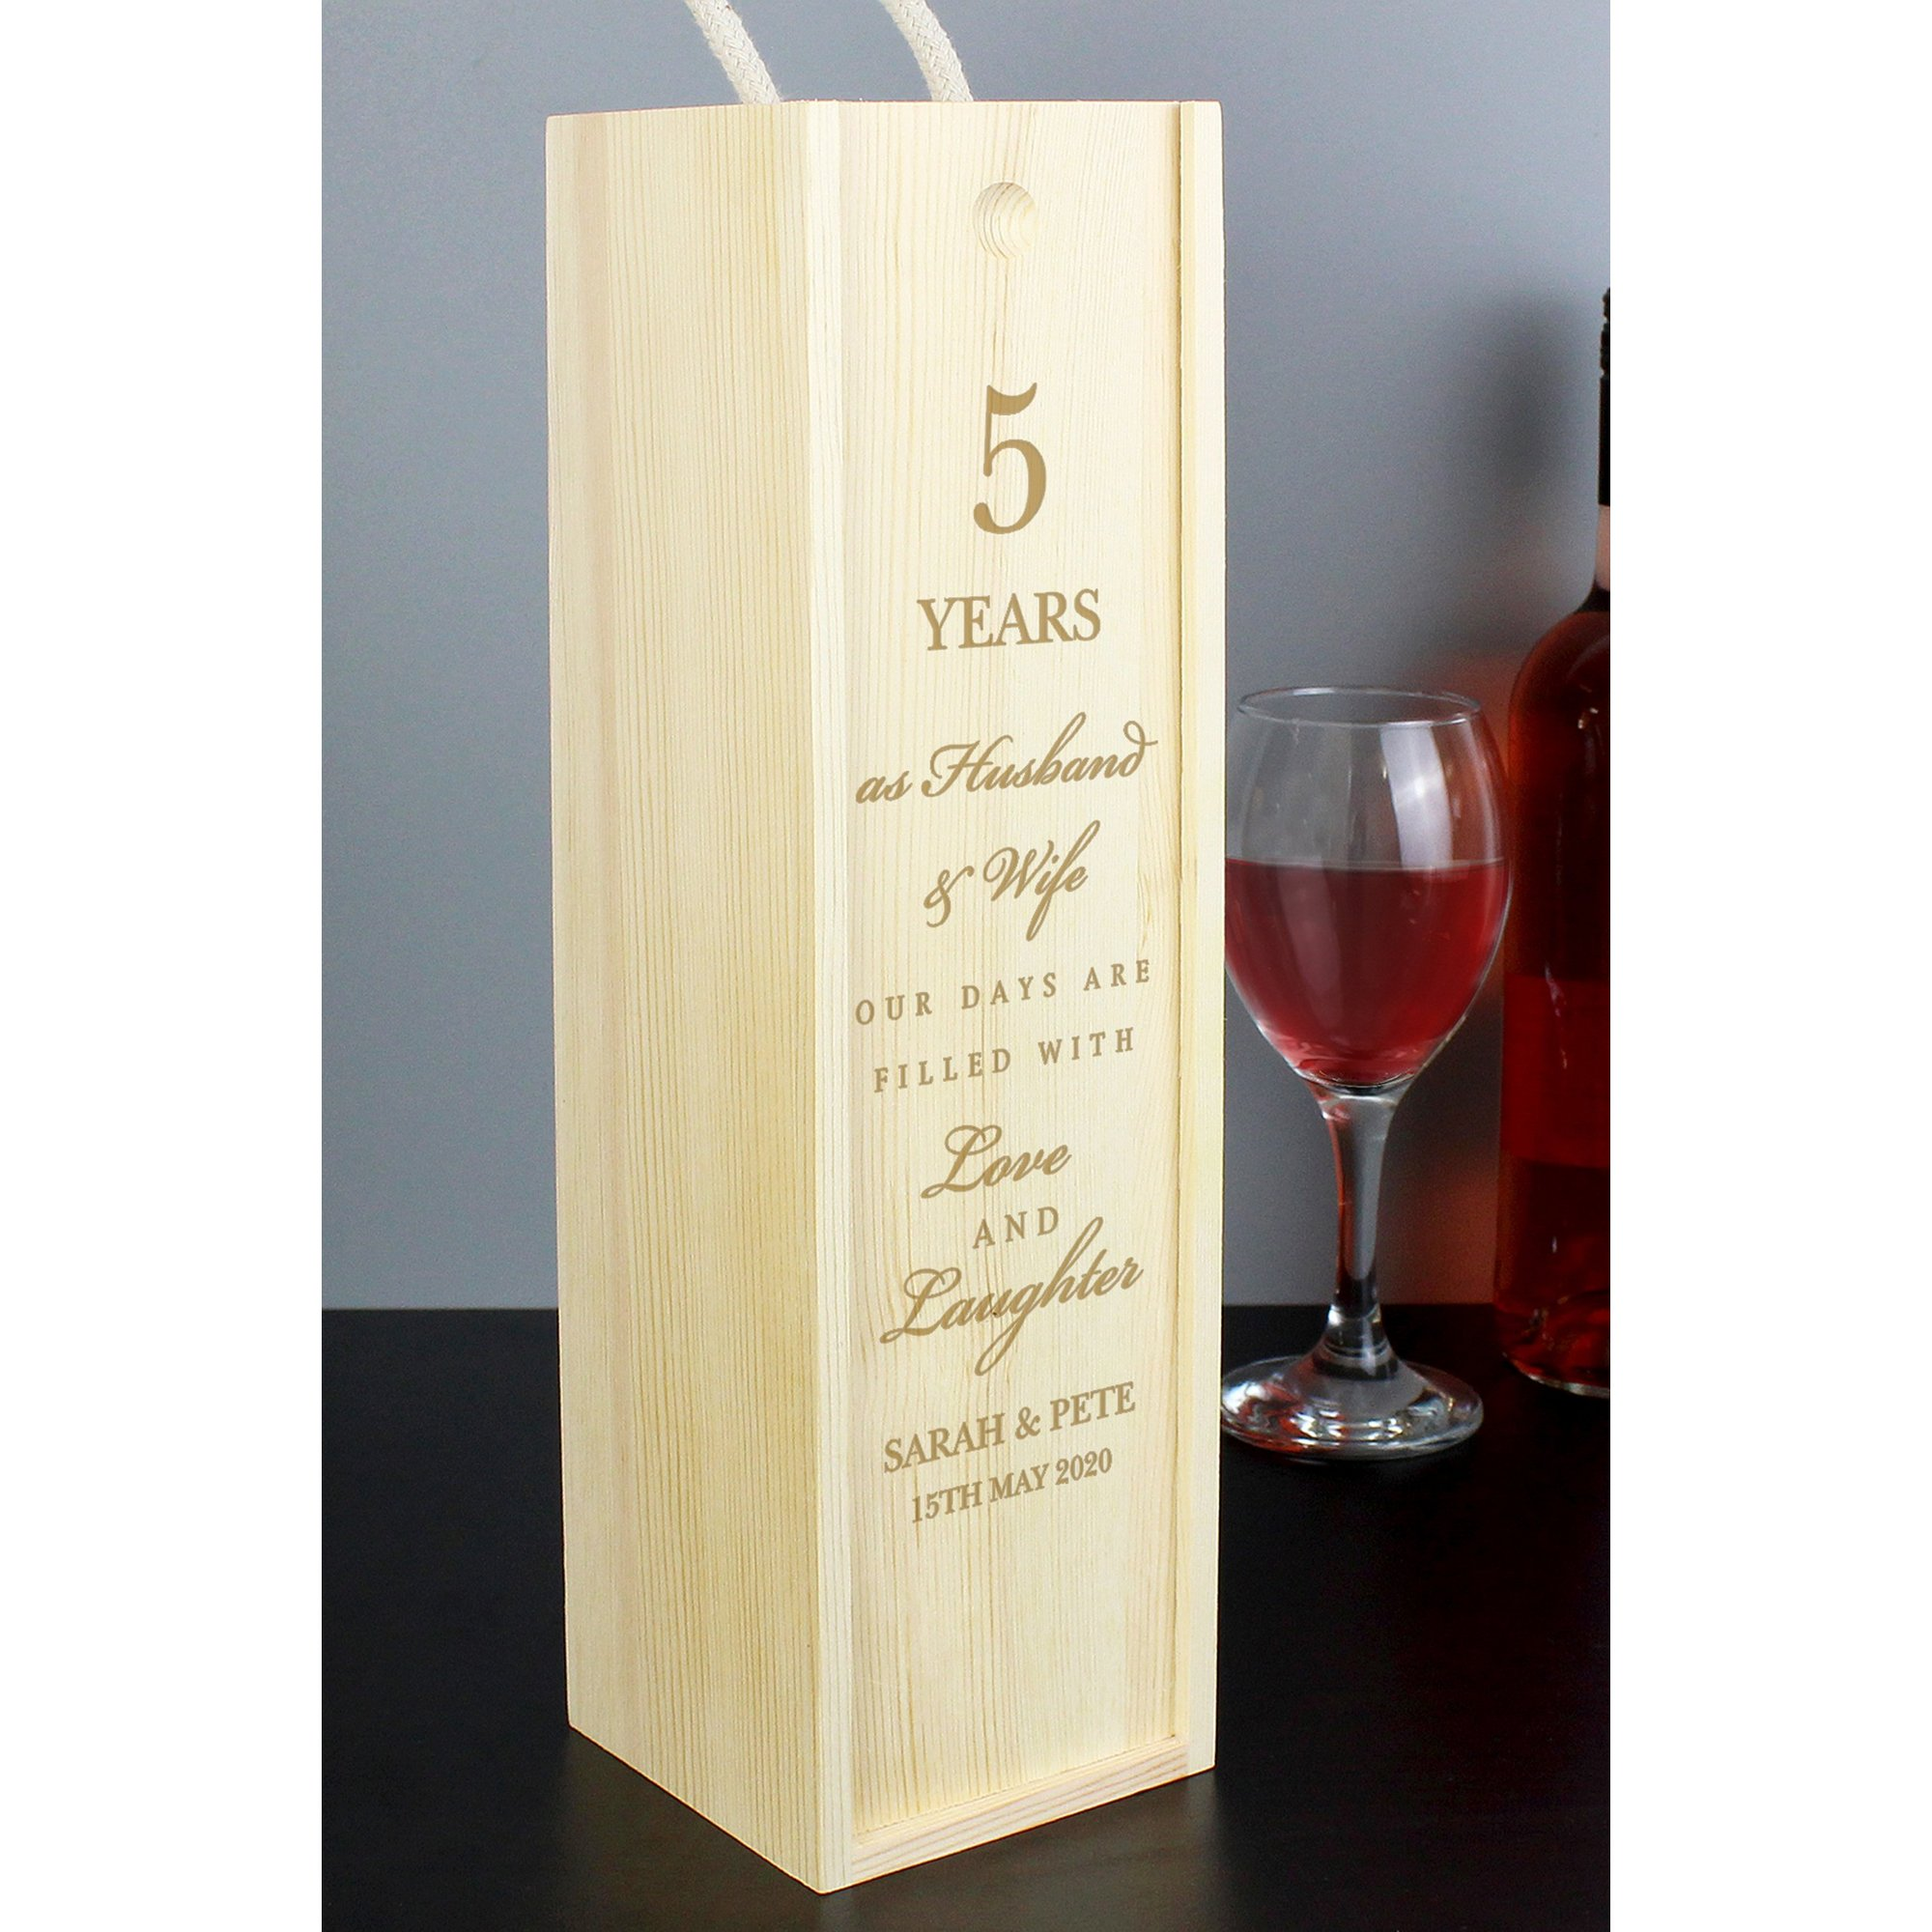 Image of Personalised Anniversary Wooden Wine Bottle Box